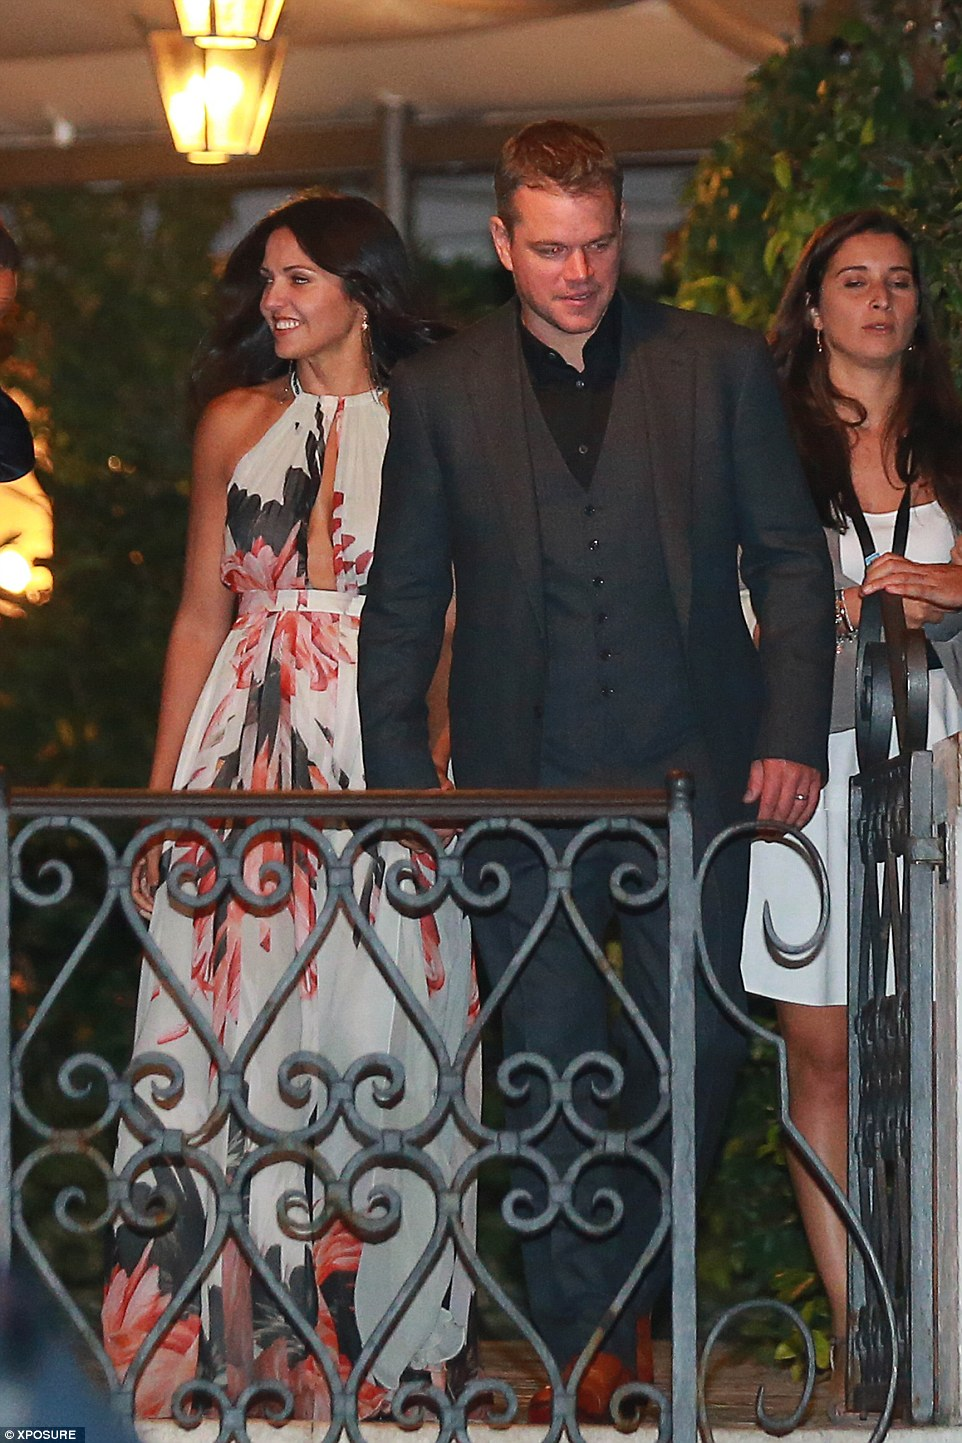 Flower power couple: Matt Damon accompanies his stylish wife Luciana Barroso out of the venue on Friday night